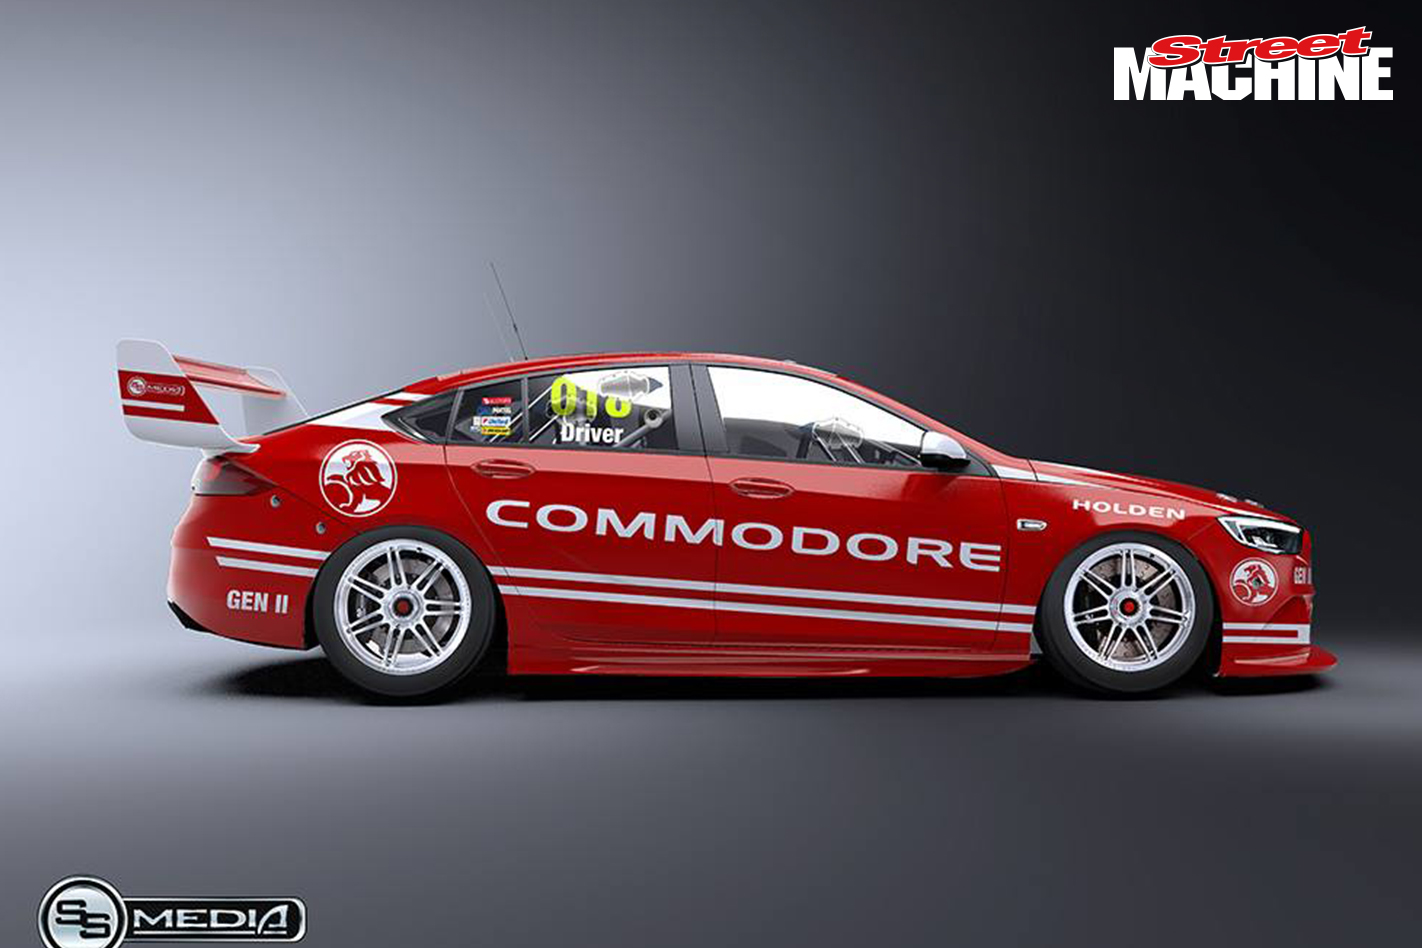 This is what the 2018 holden commodore race car could look like 2018 holden commodore supercars 4 sciox Gallery